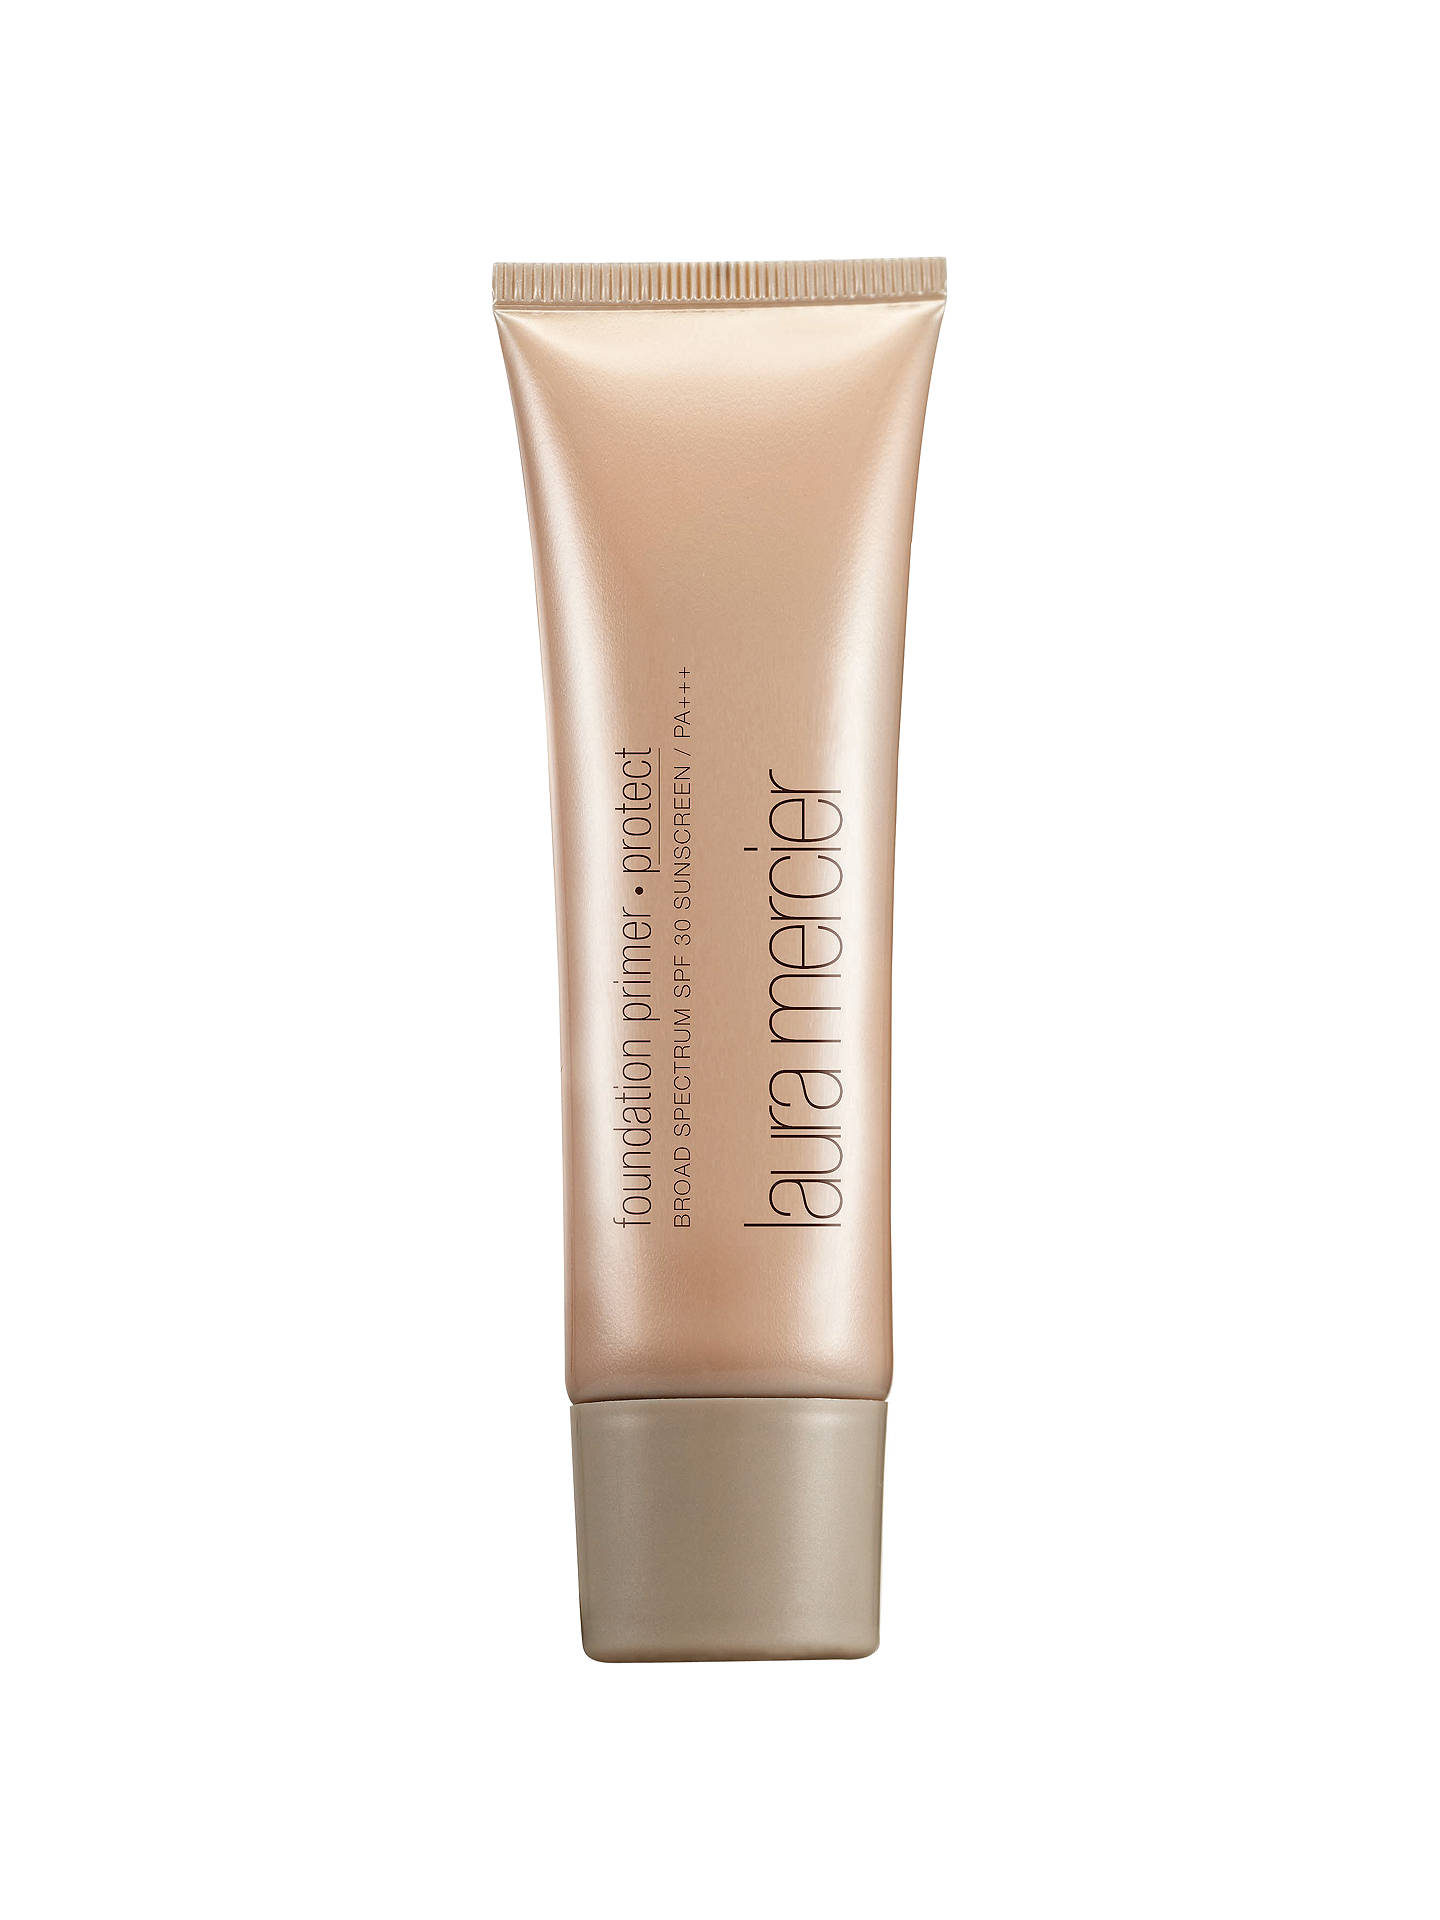 Laura Mercier Foundation Primer Protect